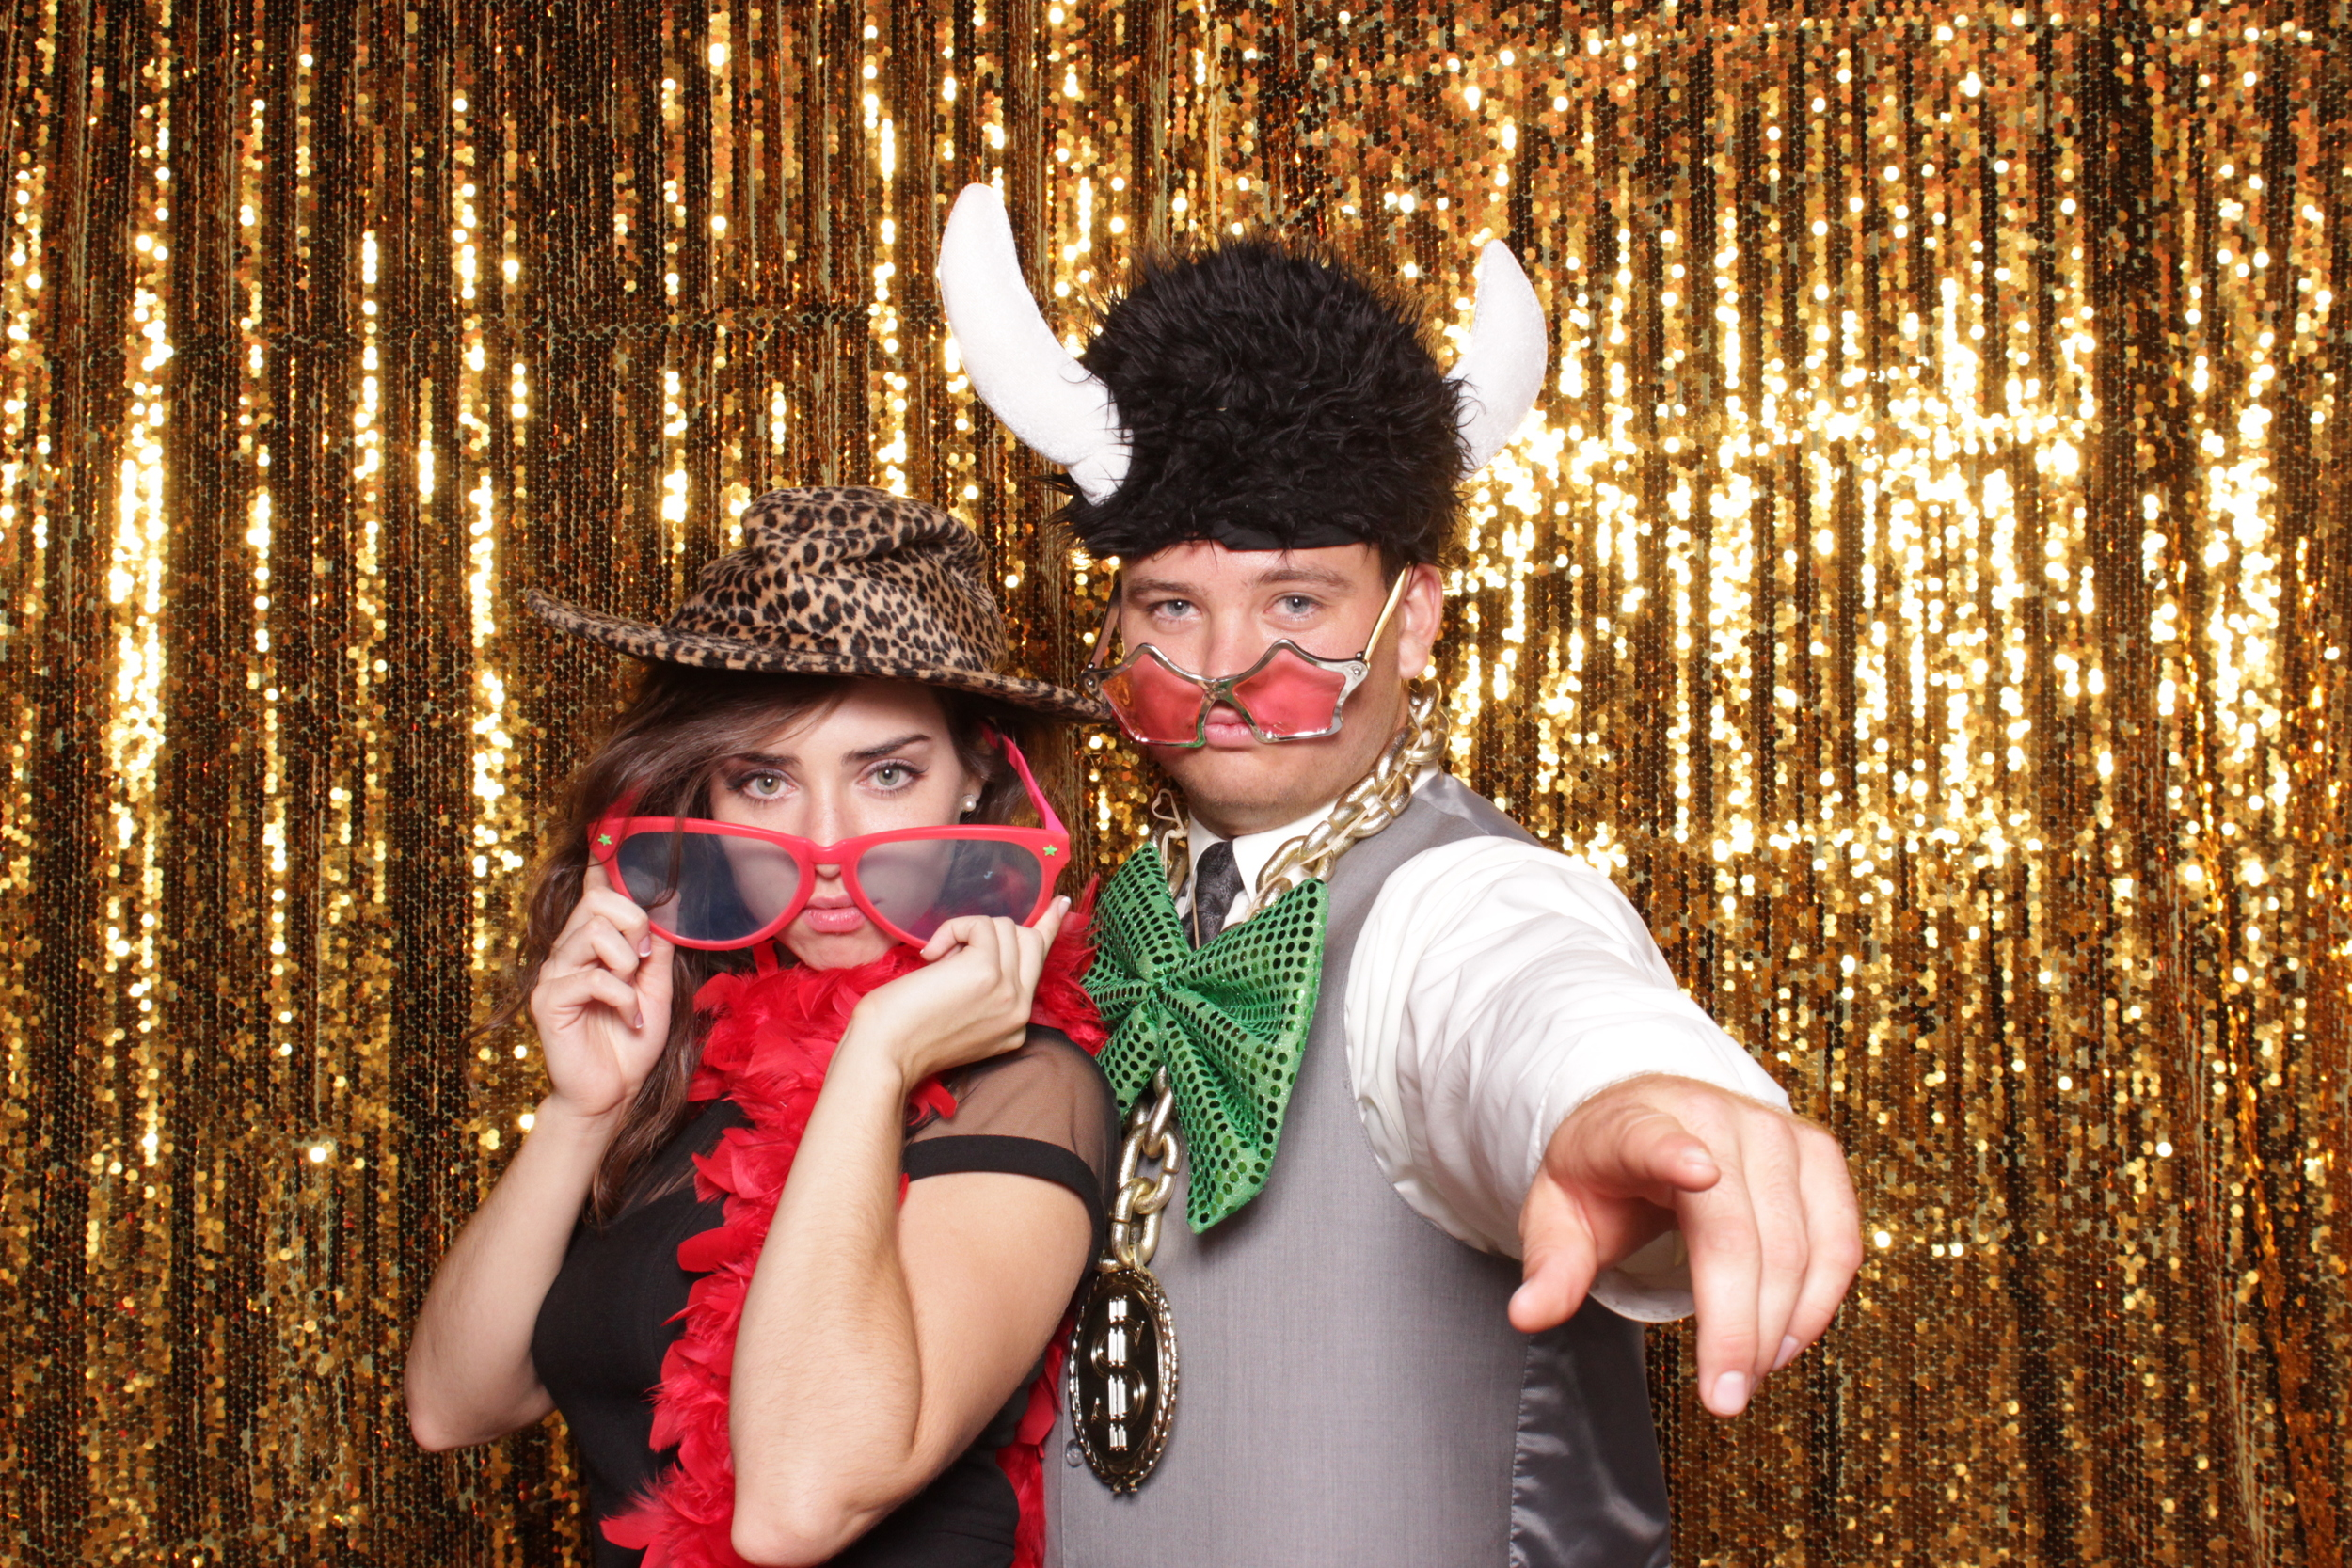 tuscan-ridge-photo-booth-rental-reception-halloween